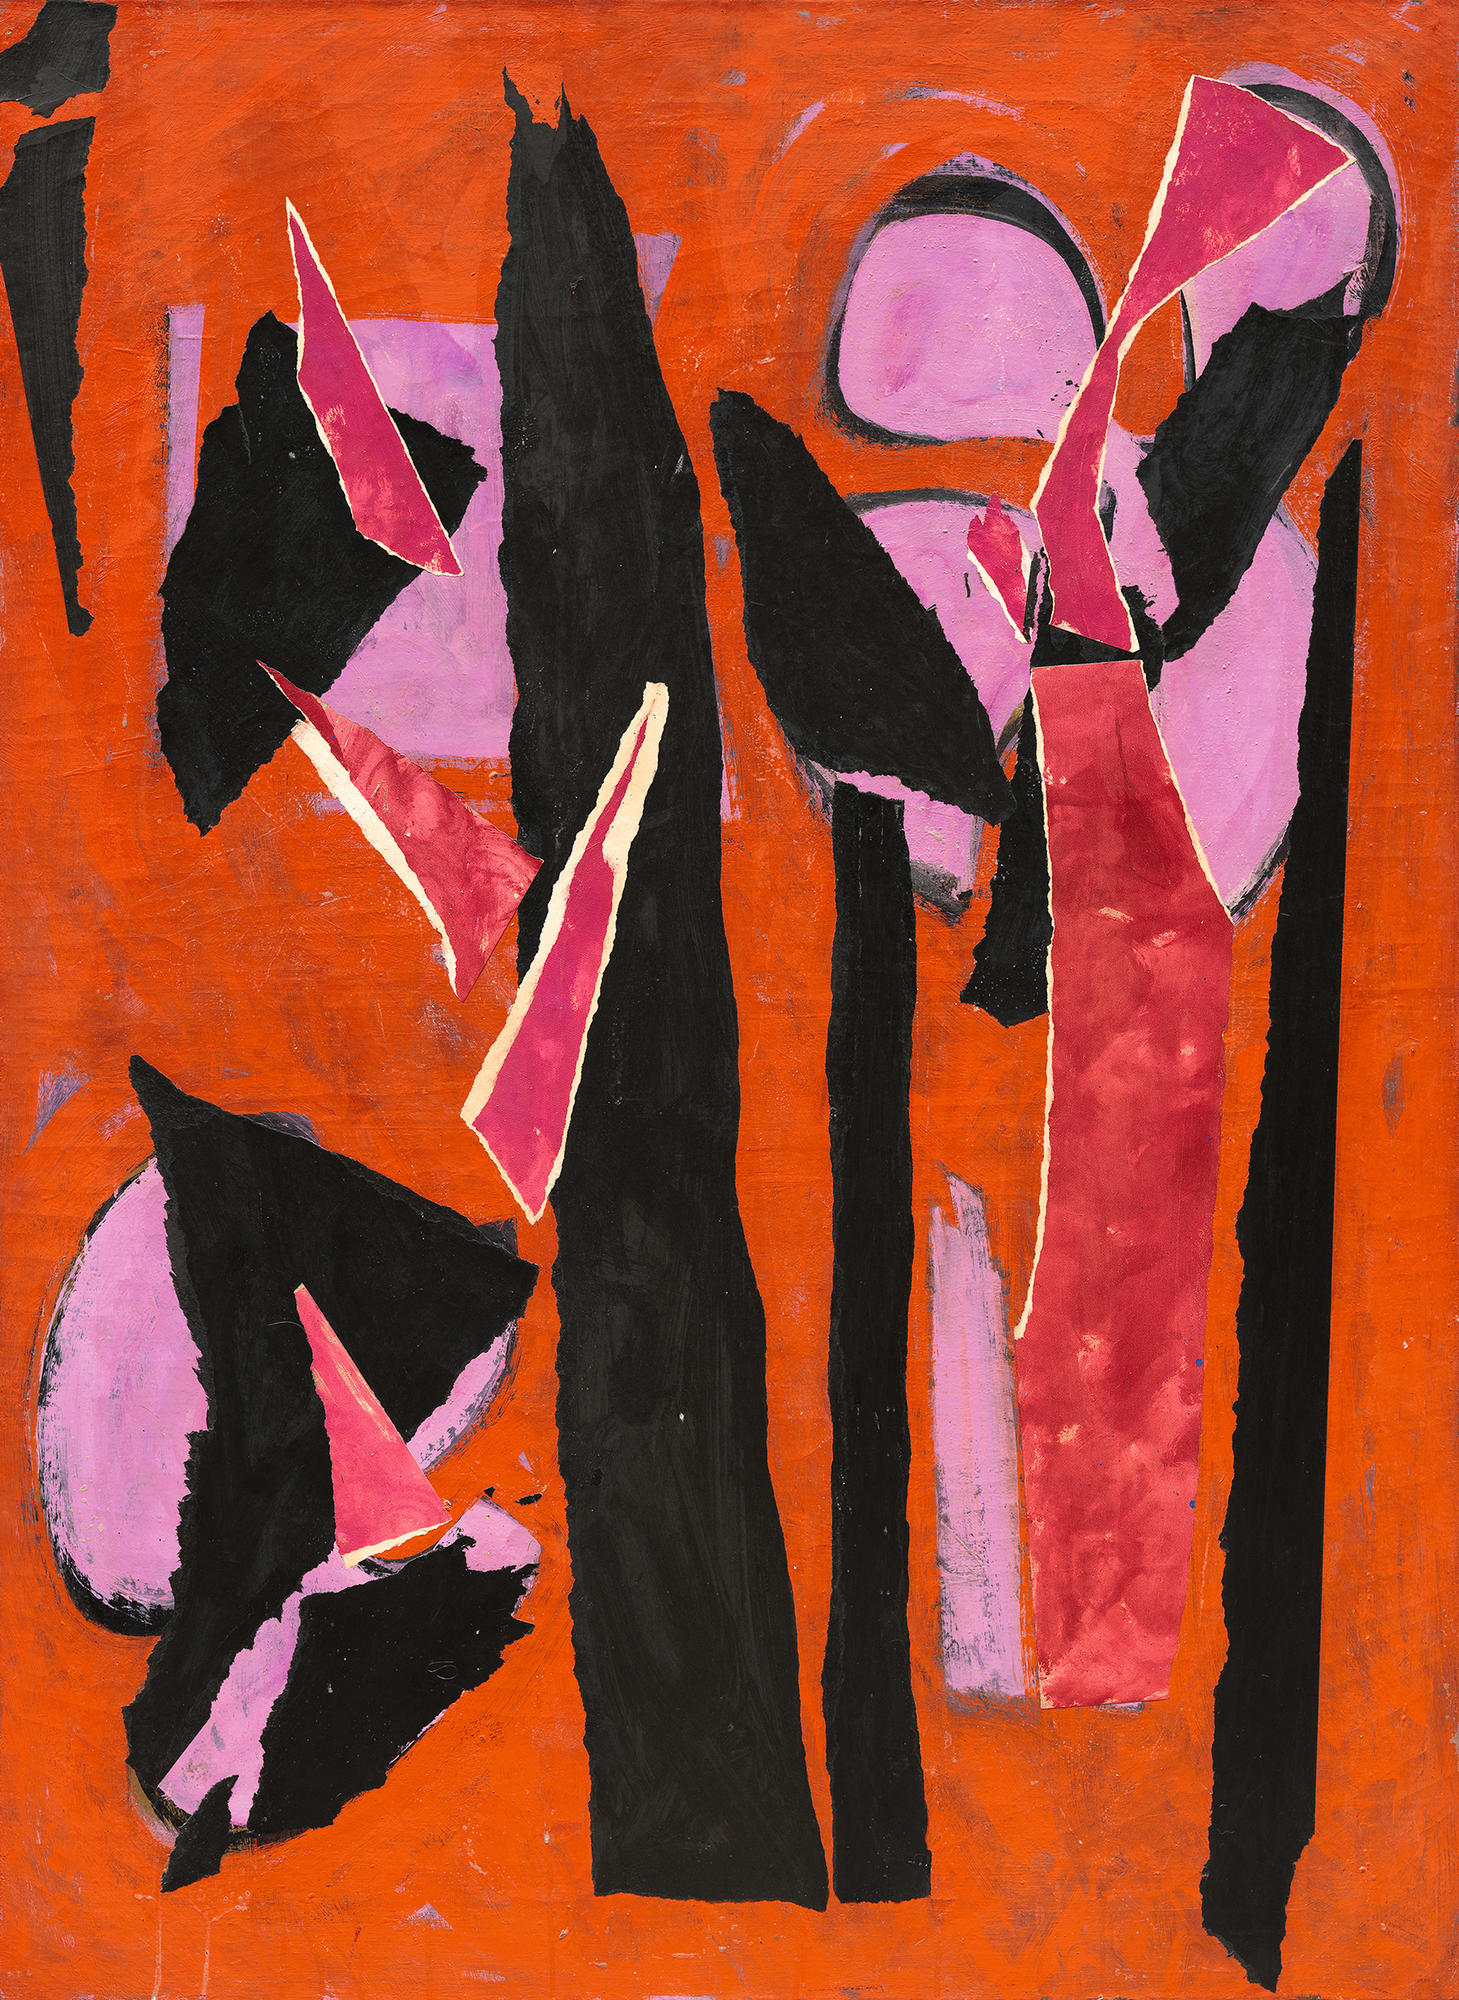 Credit: Lee Krasner, Desert Moon, 1955. Los Angeles County Museum of Art. © The Pollock-Krasner Foundation. © 2018, Digital Image Museum Associates/ LACMA/Art Resource NY/ Scala, Florence.